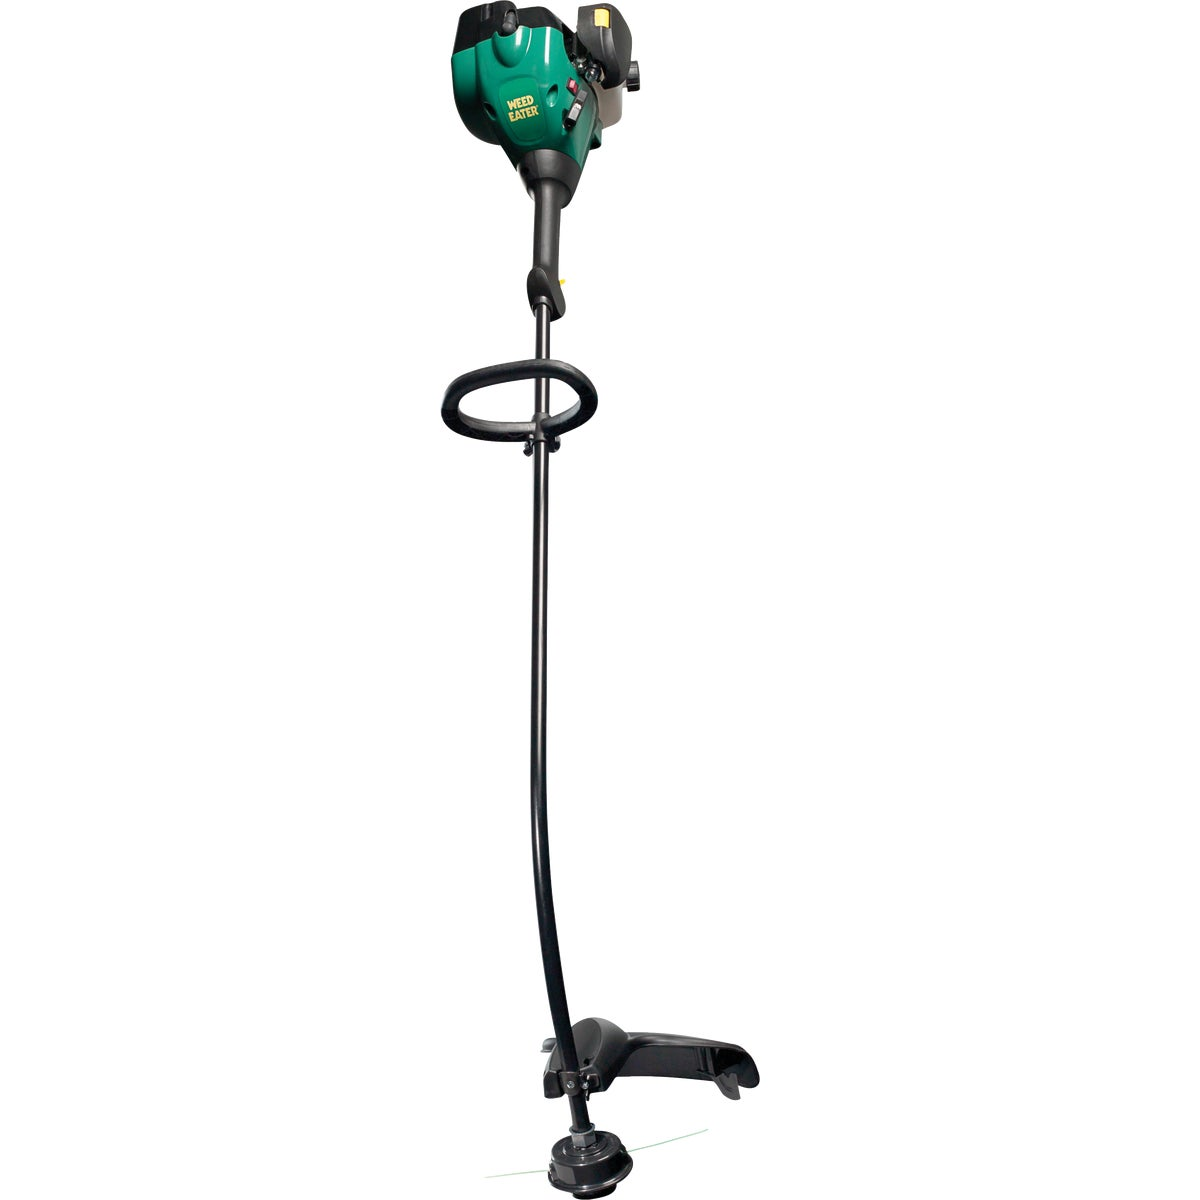 "15"" 2-CYCLE TRIMMER - 967184401 by Poulan"